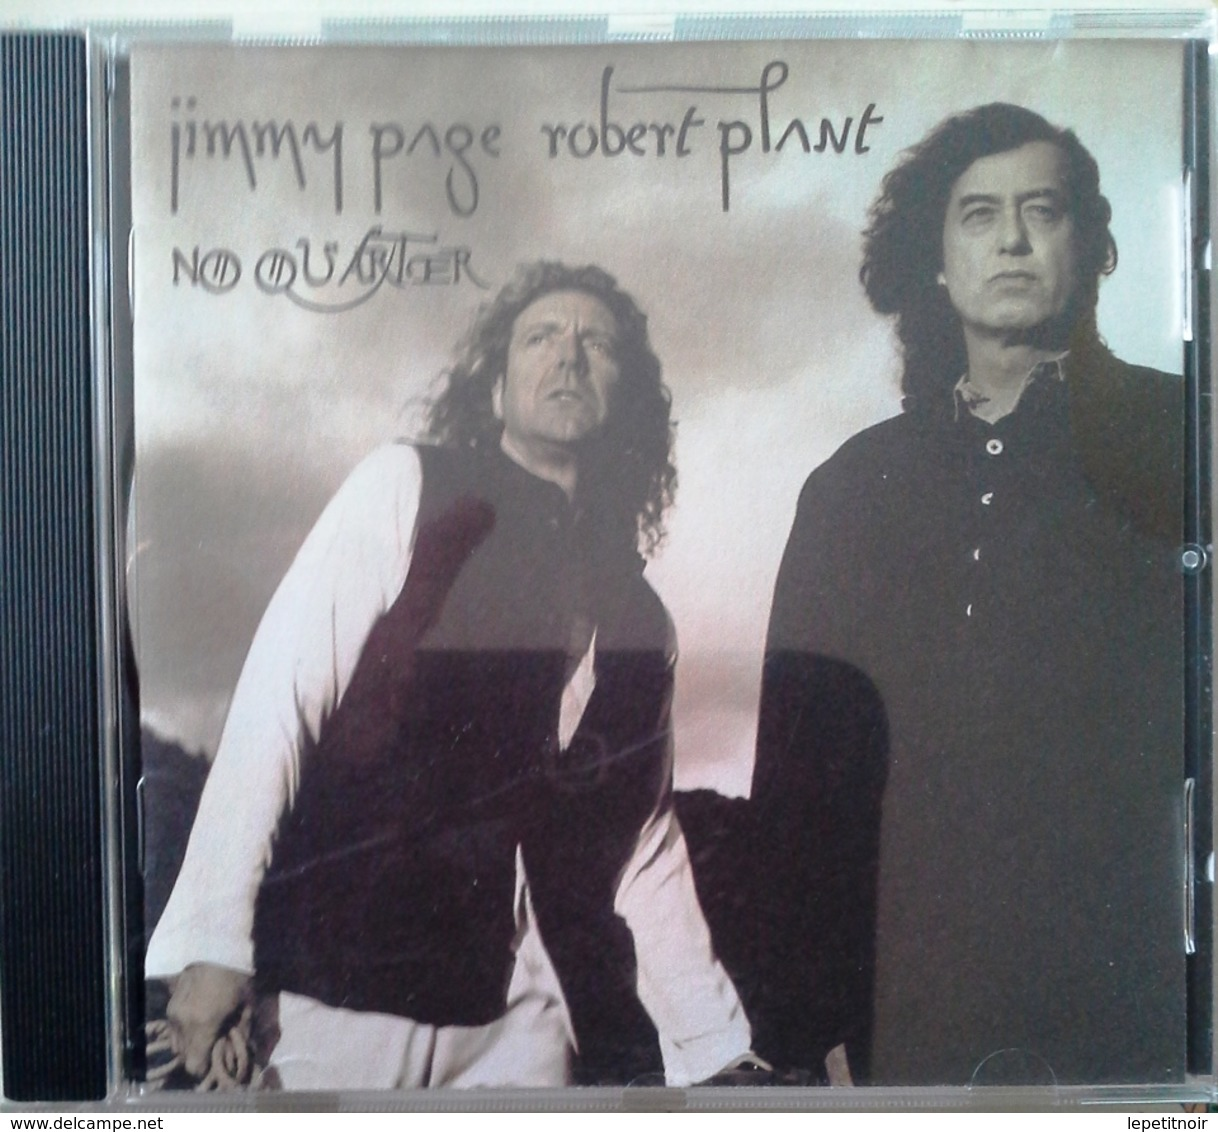 CD Jimmy Page Robert Plant No Quarter - Other - English Music